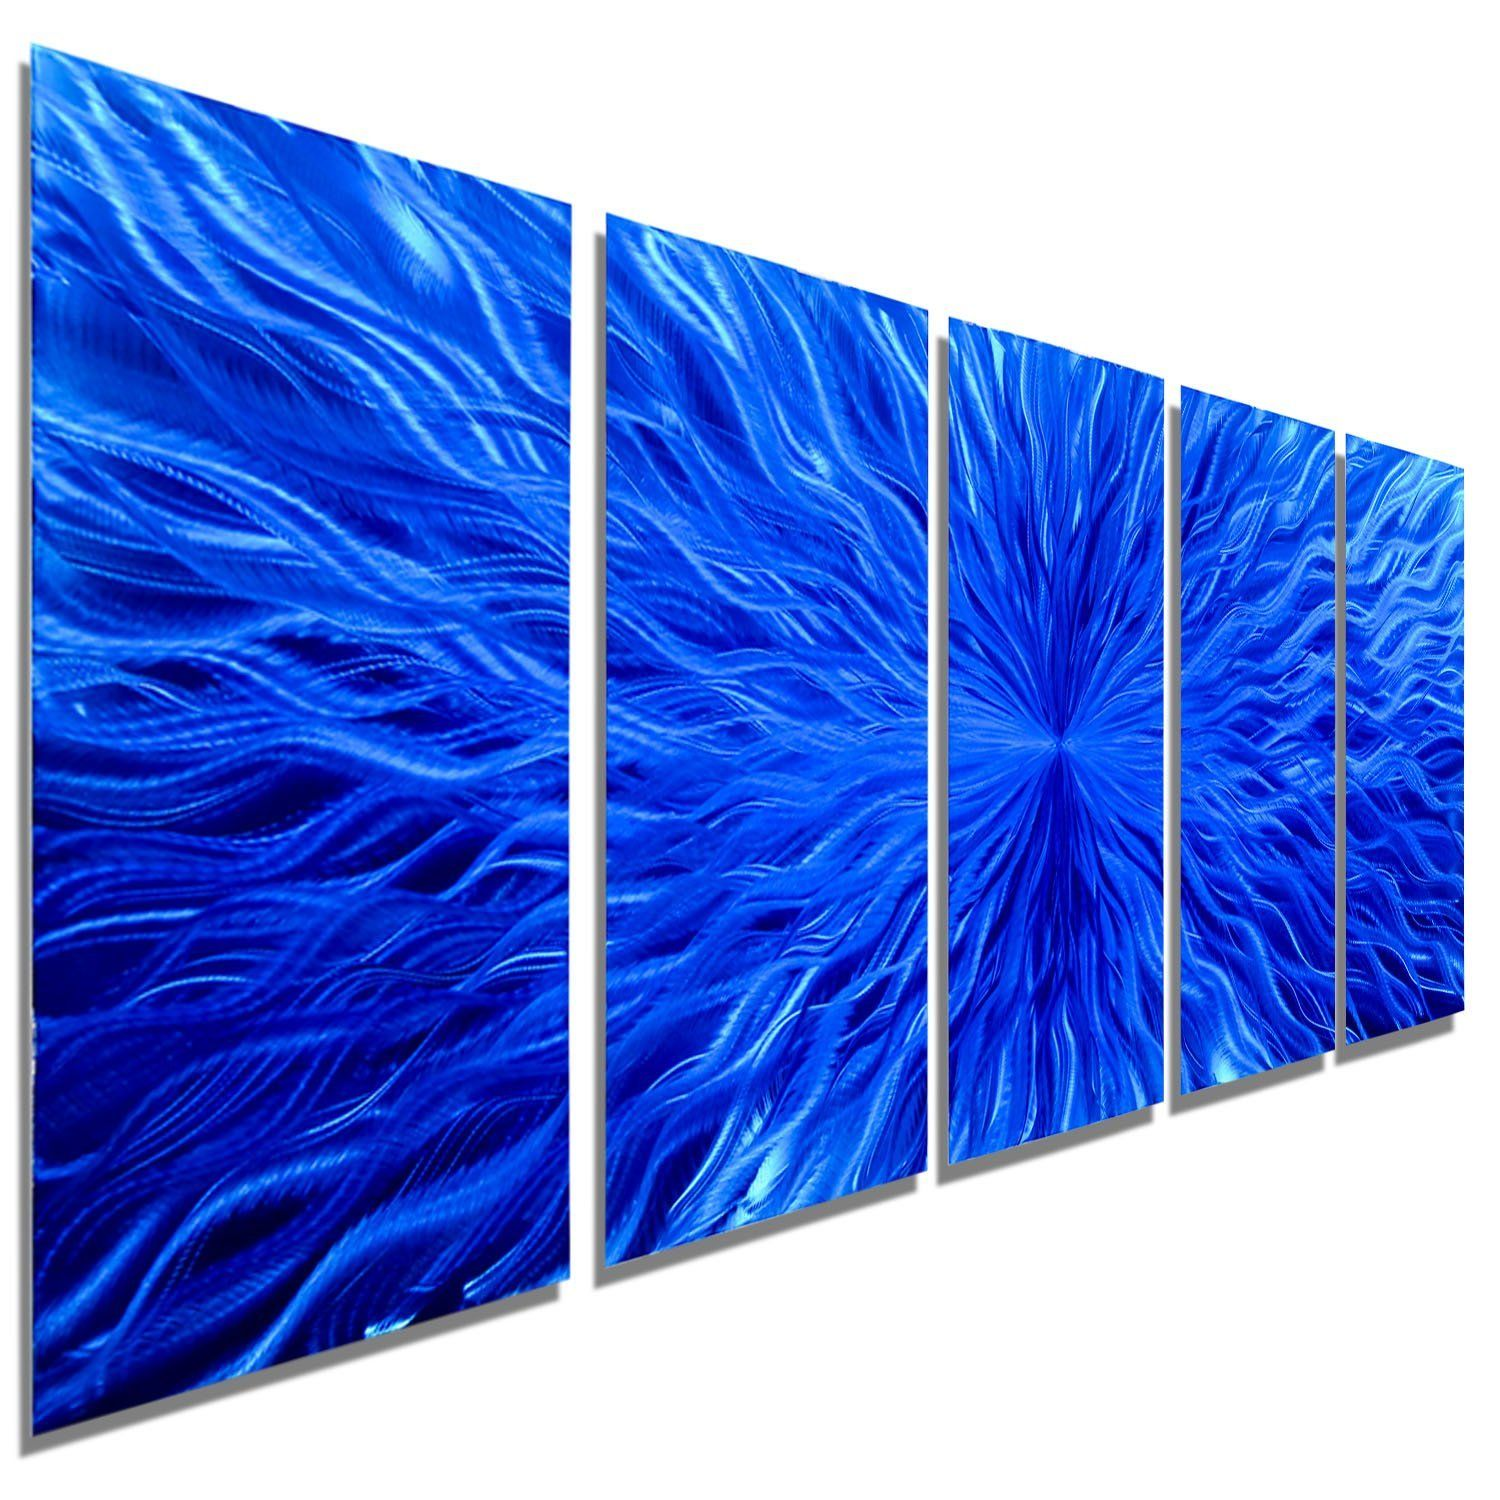 Blue Metal Wall Decor Classy Large Blue Contemporary Metal Wall Art Sculpture  Multi Panel Design Decoration